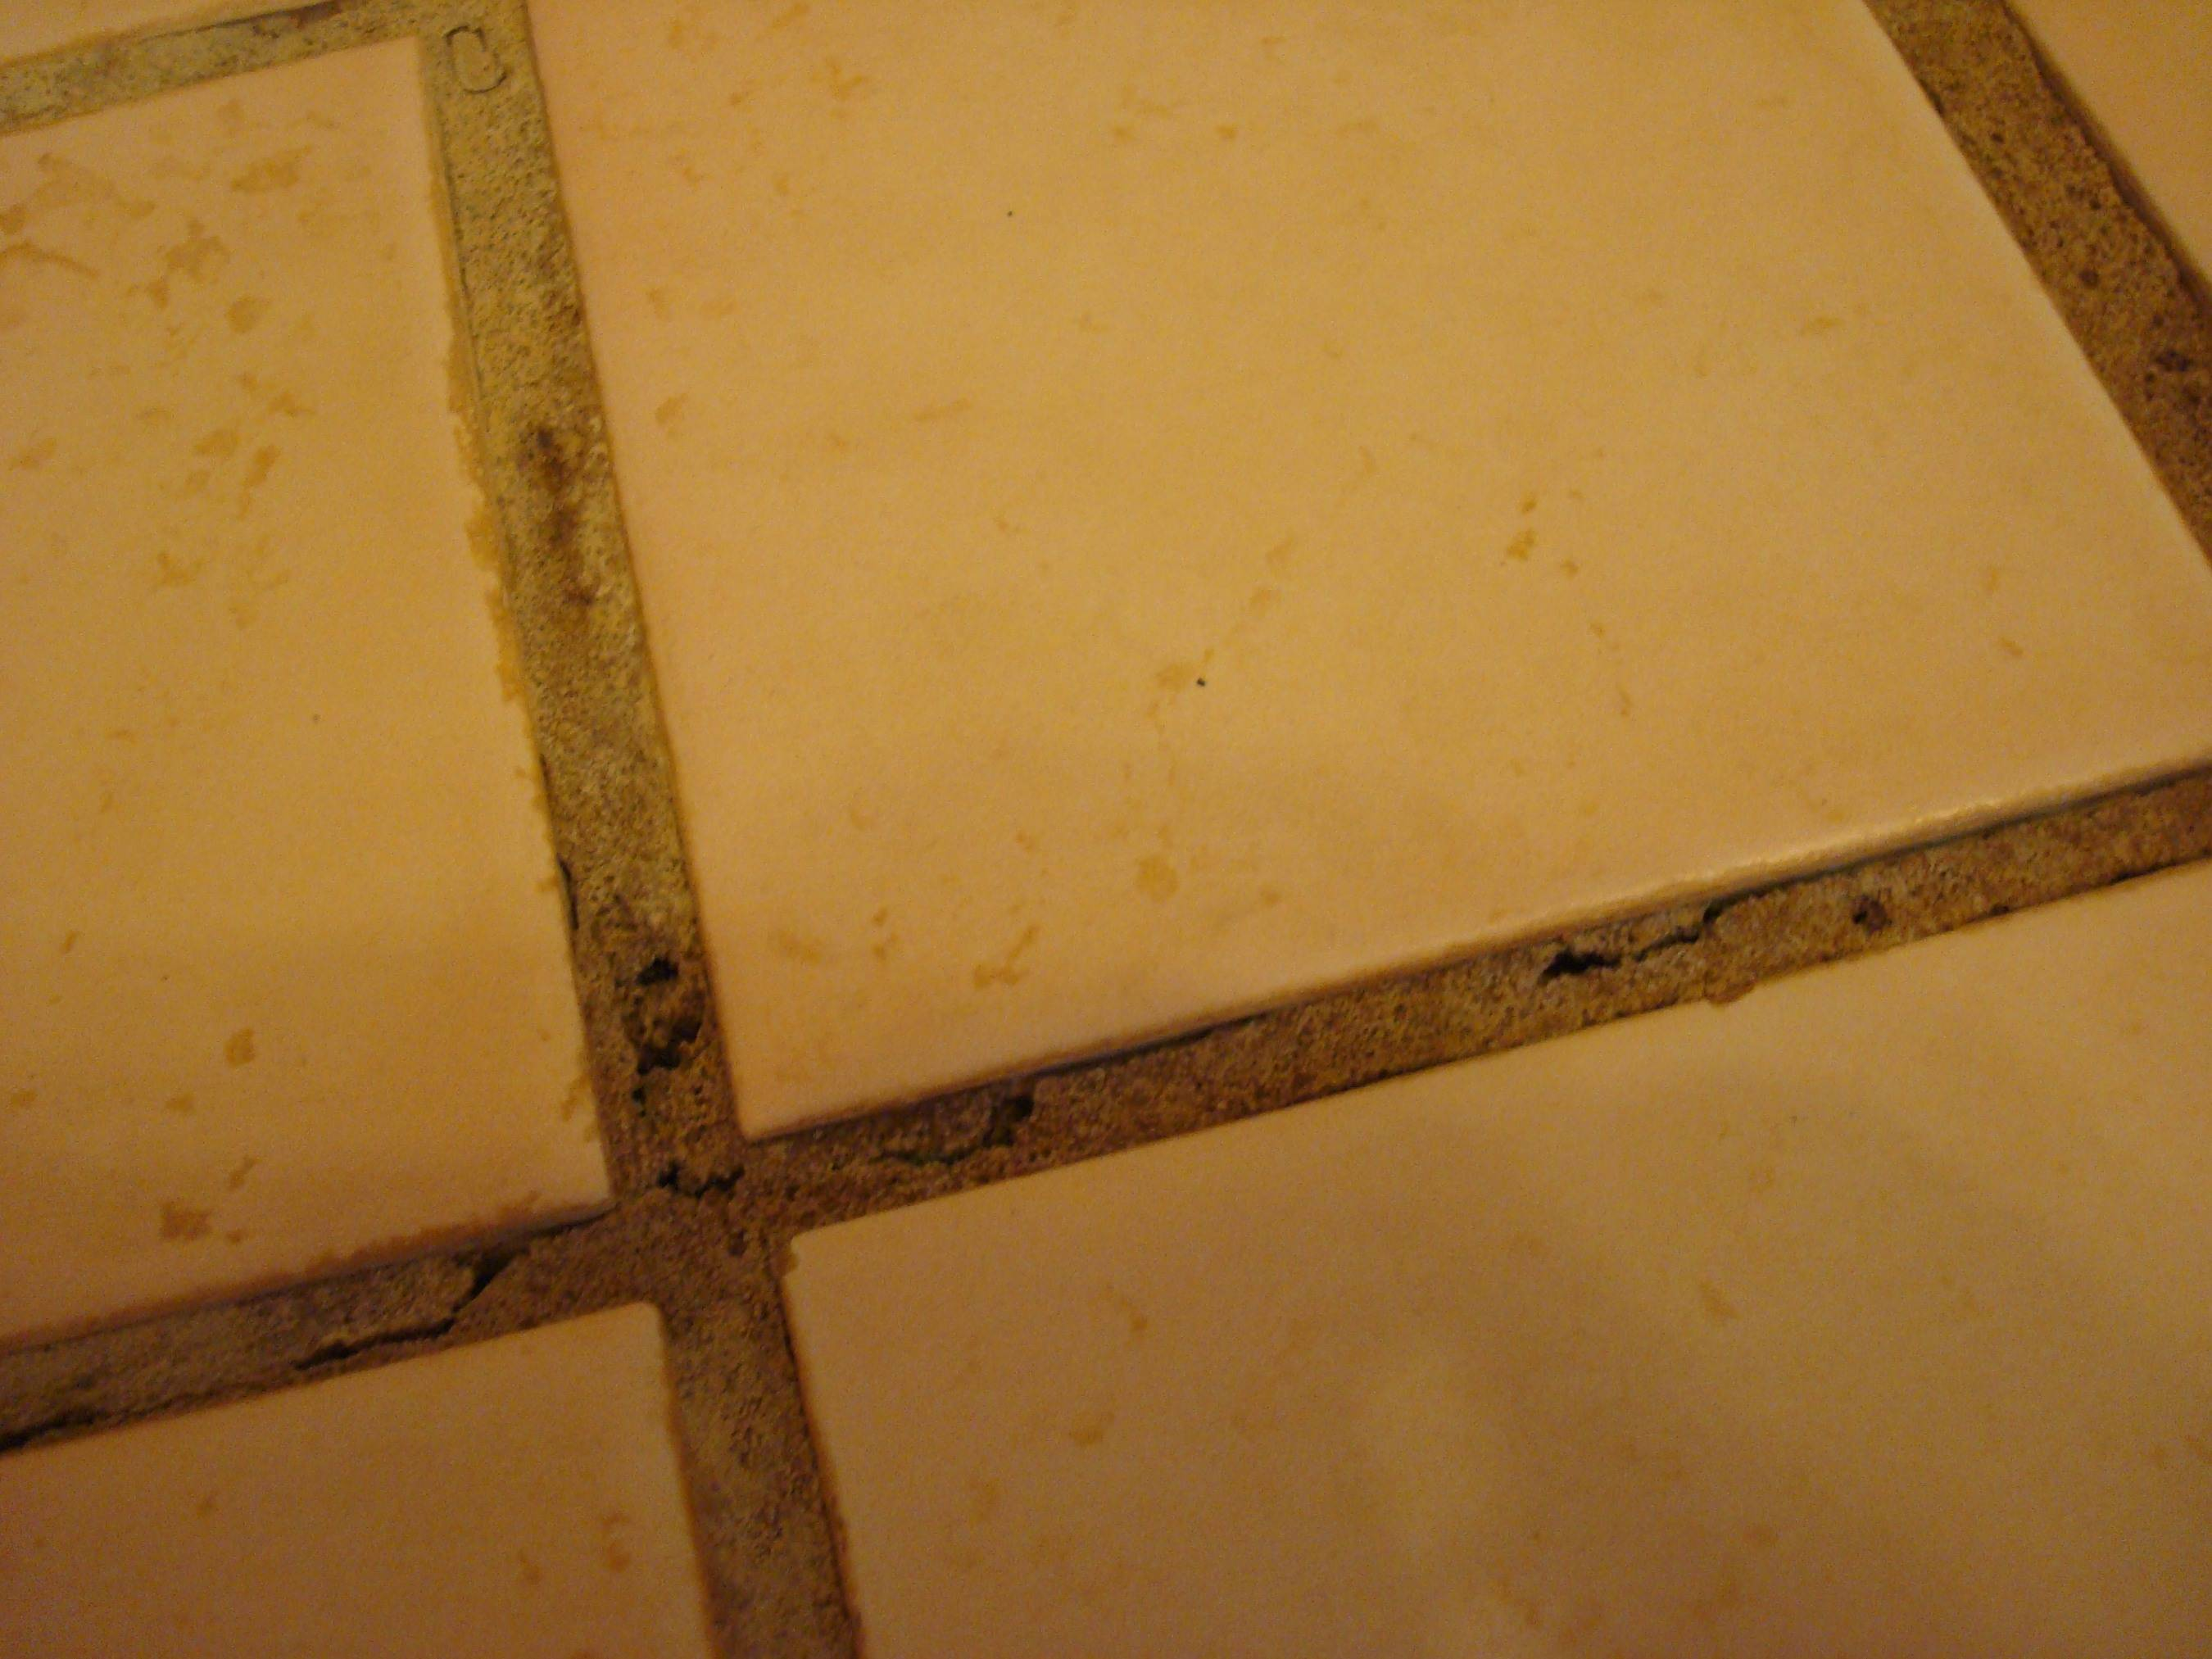 Bathroom Grout Bathroom What Is The Best Way To Repair And Prevent Cracking